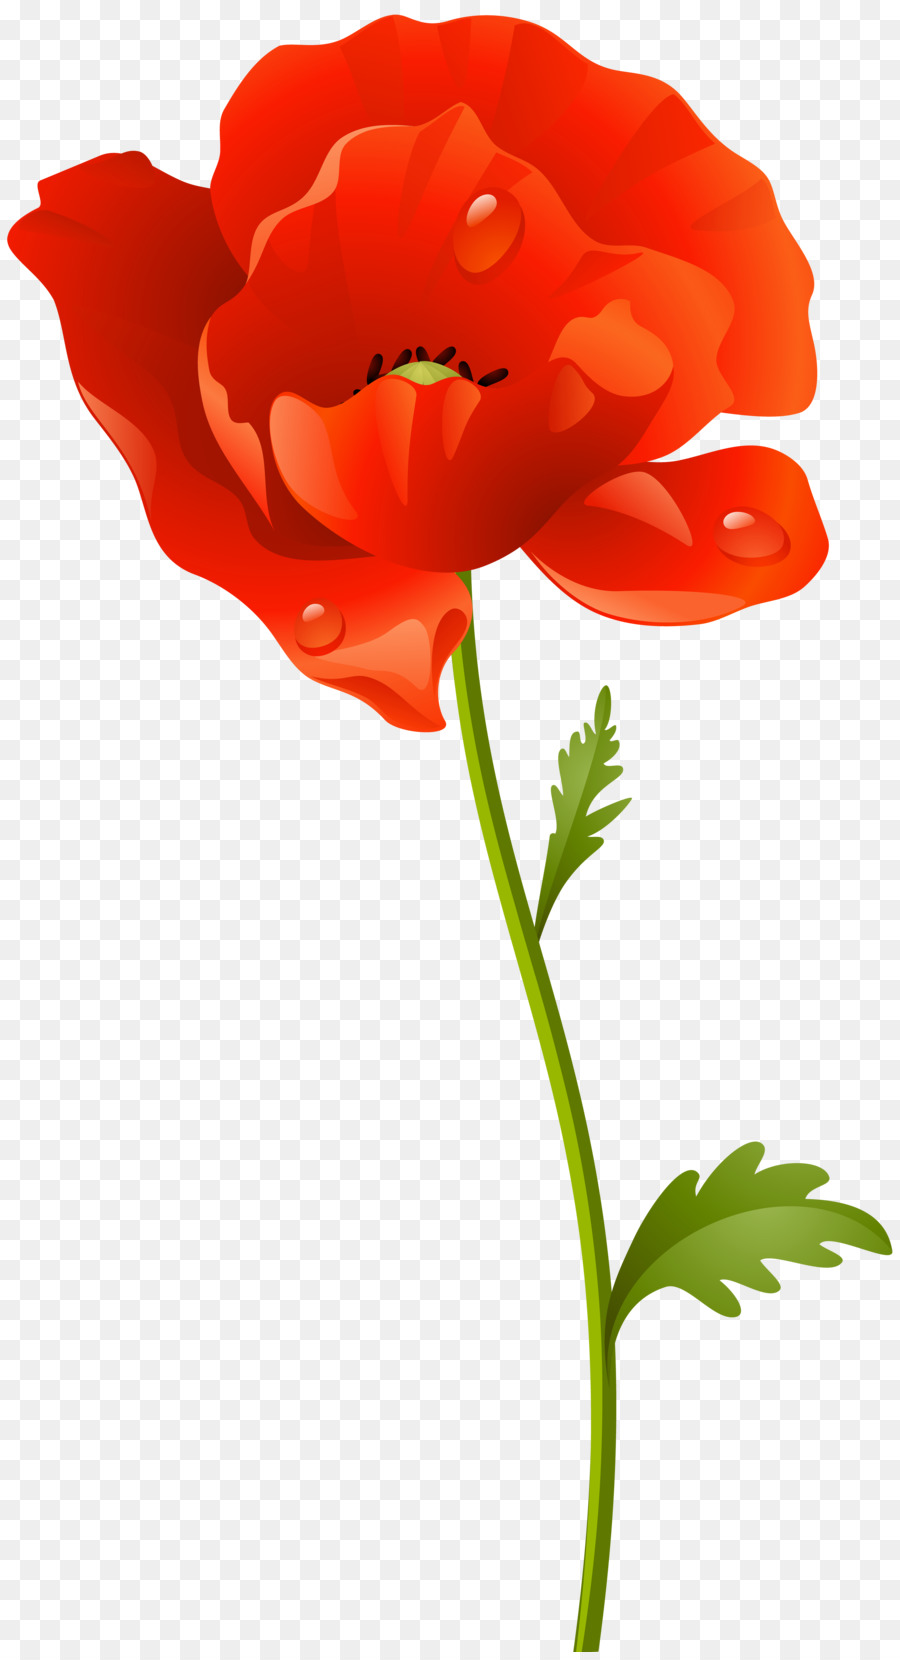 Poppy clipart stems. Flowers background